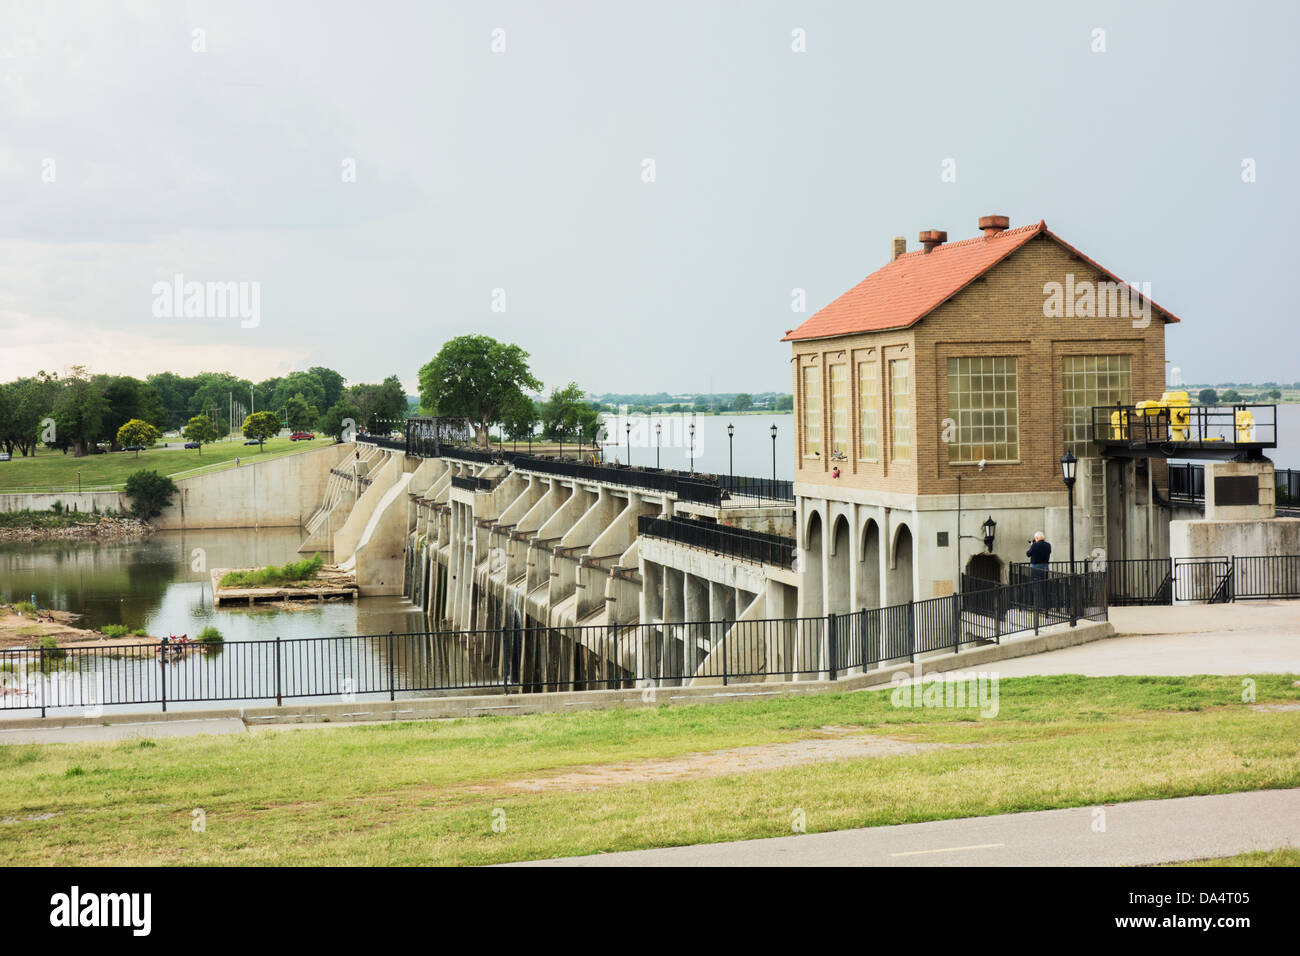 Lake overholser dam in oklahoma city built in 1917 and 1918 to lake overholser dam in oklahoma city built in 1917 and 1918 to impound water from the north canadian river sciox Image collections